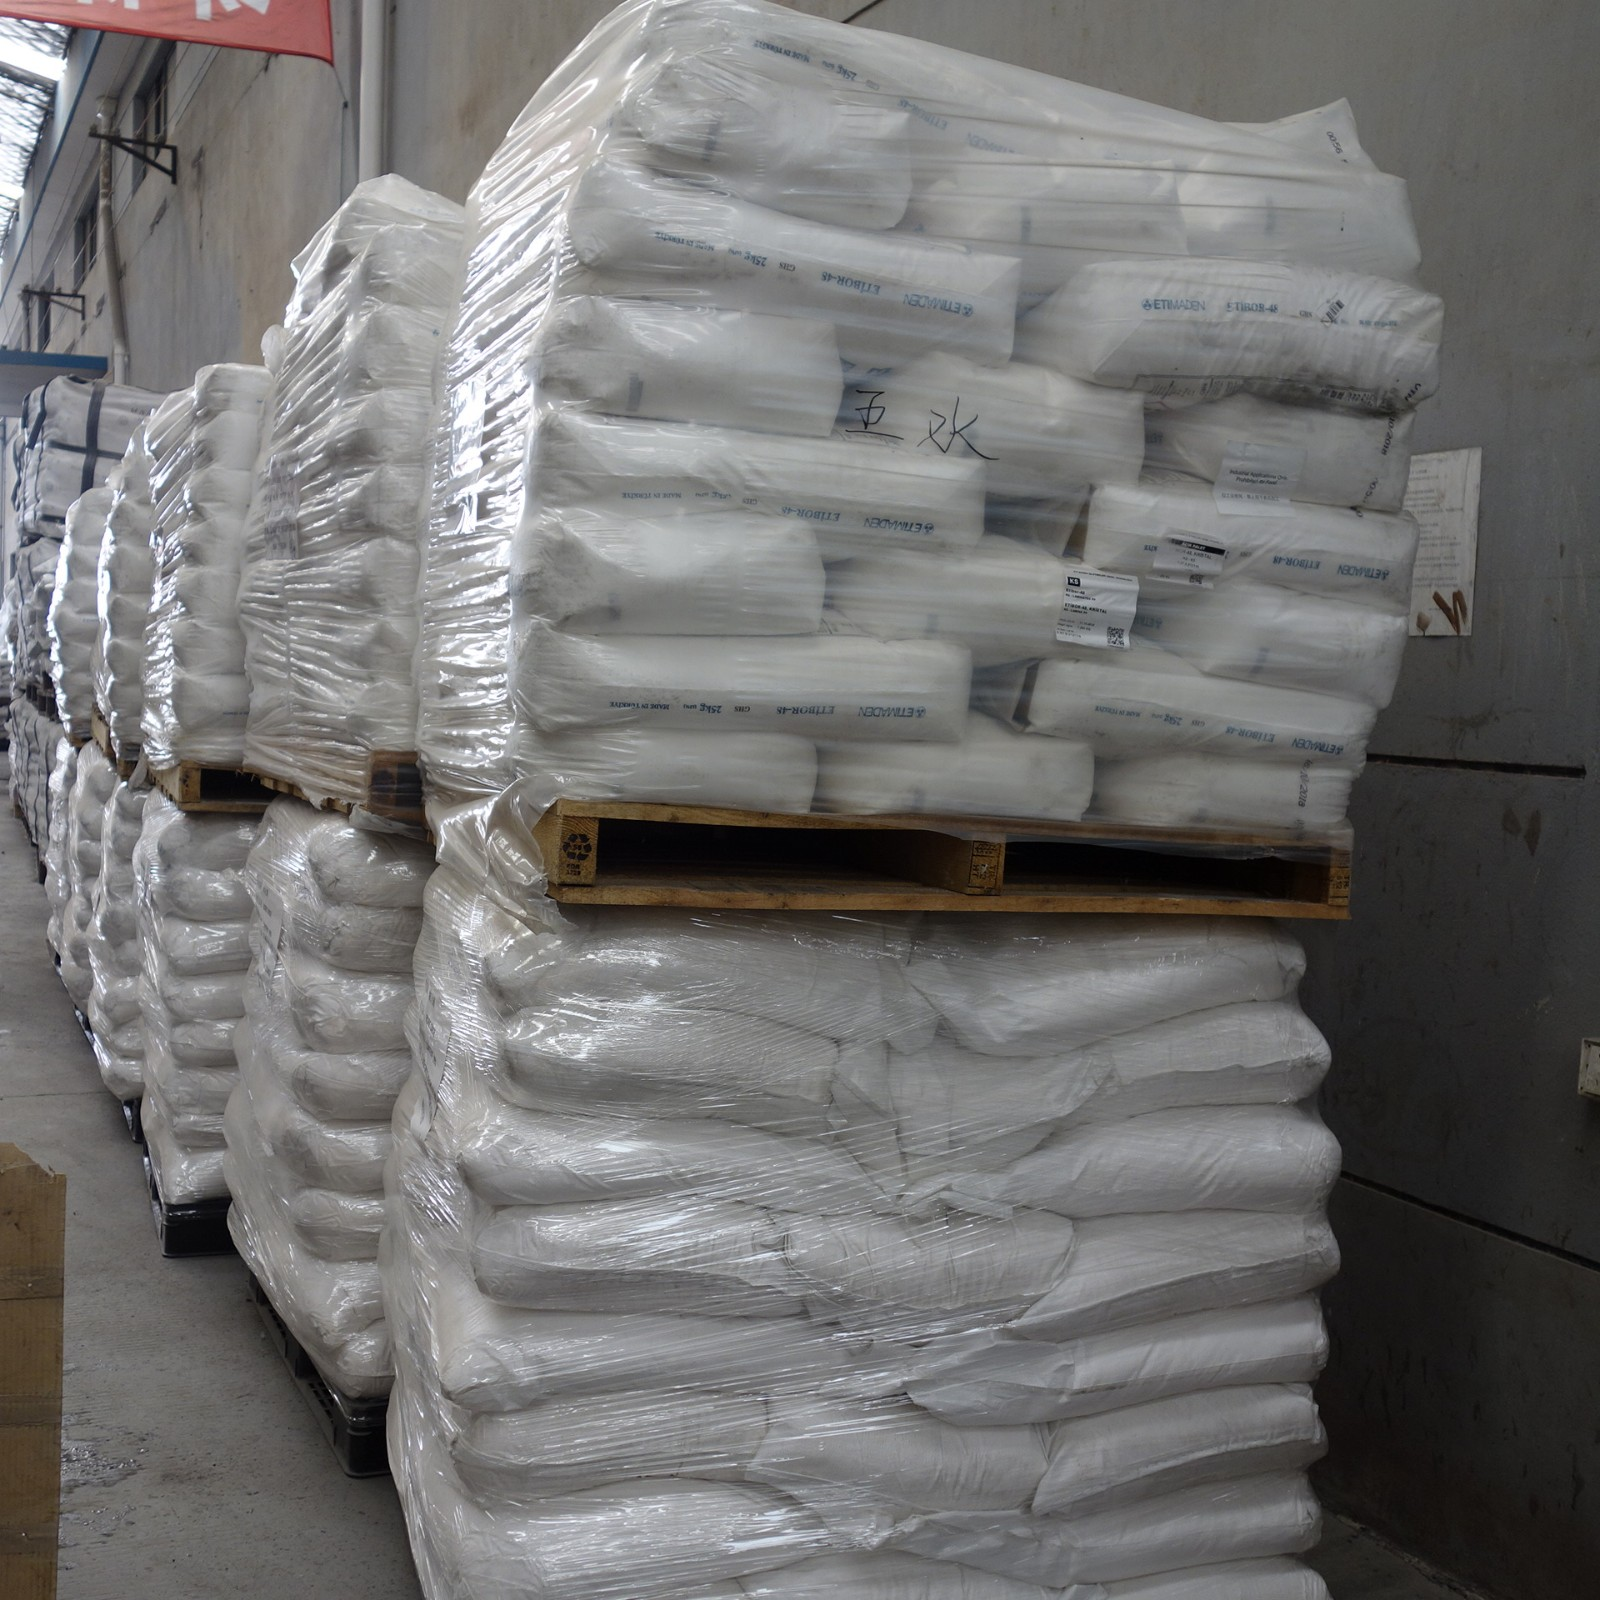 Yixin Top borax powder online for business for Chemical products-2